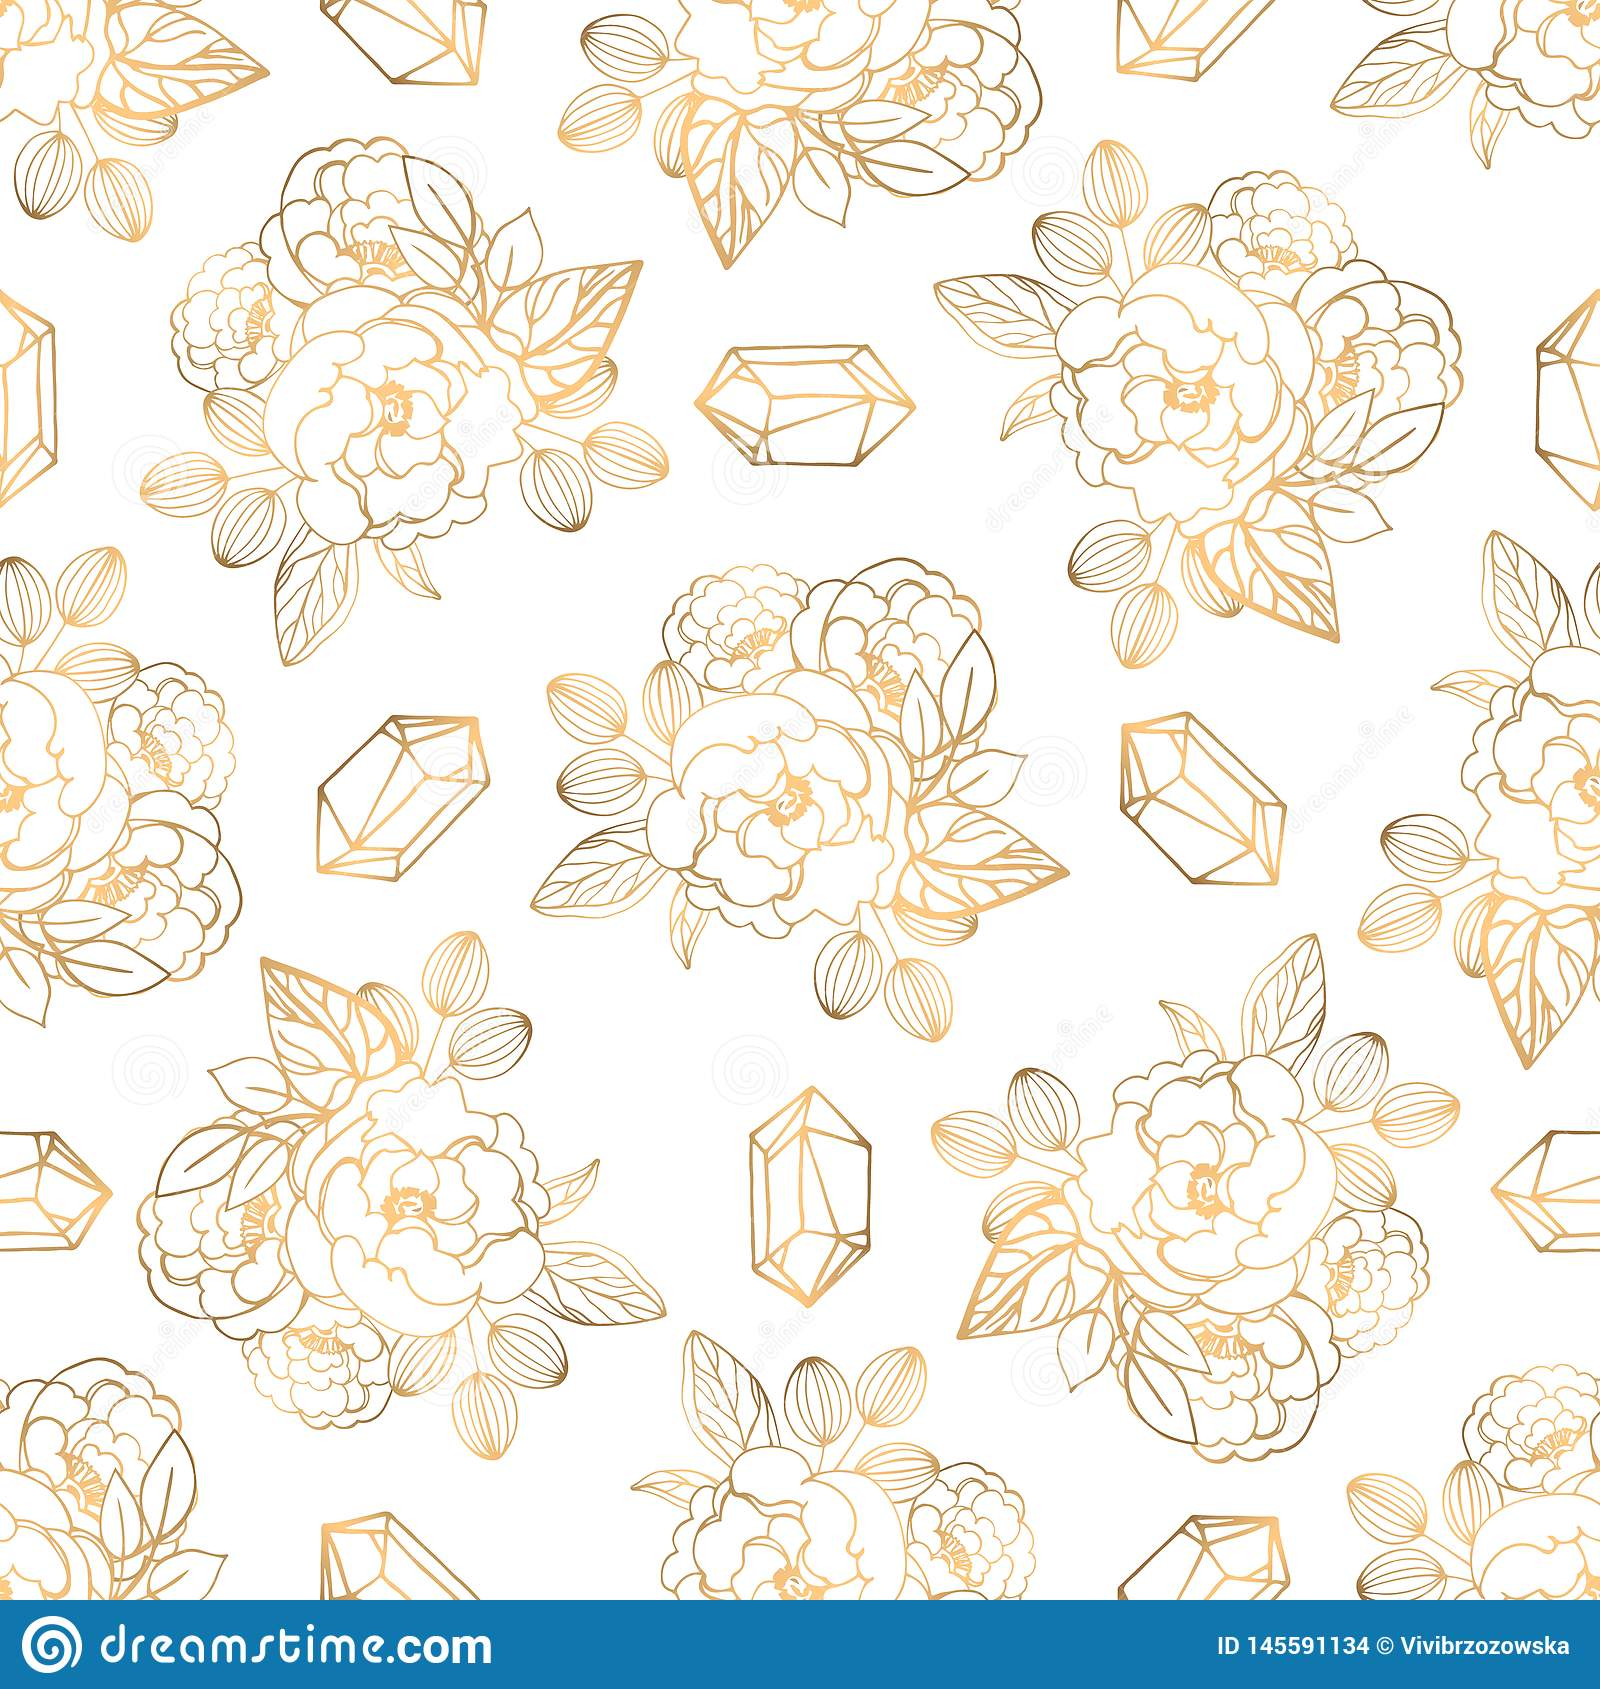 Hand drawn seamless pattern with jewerly and floral elements